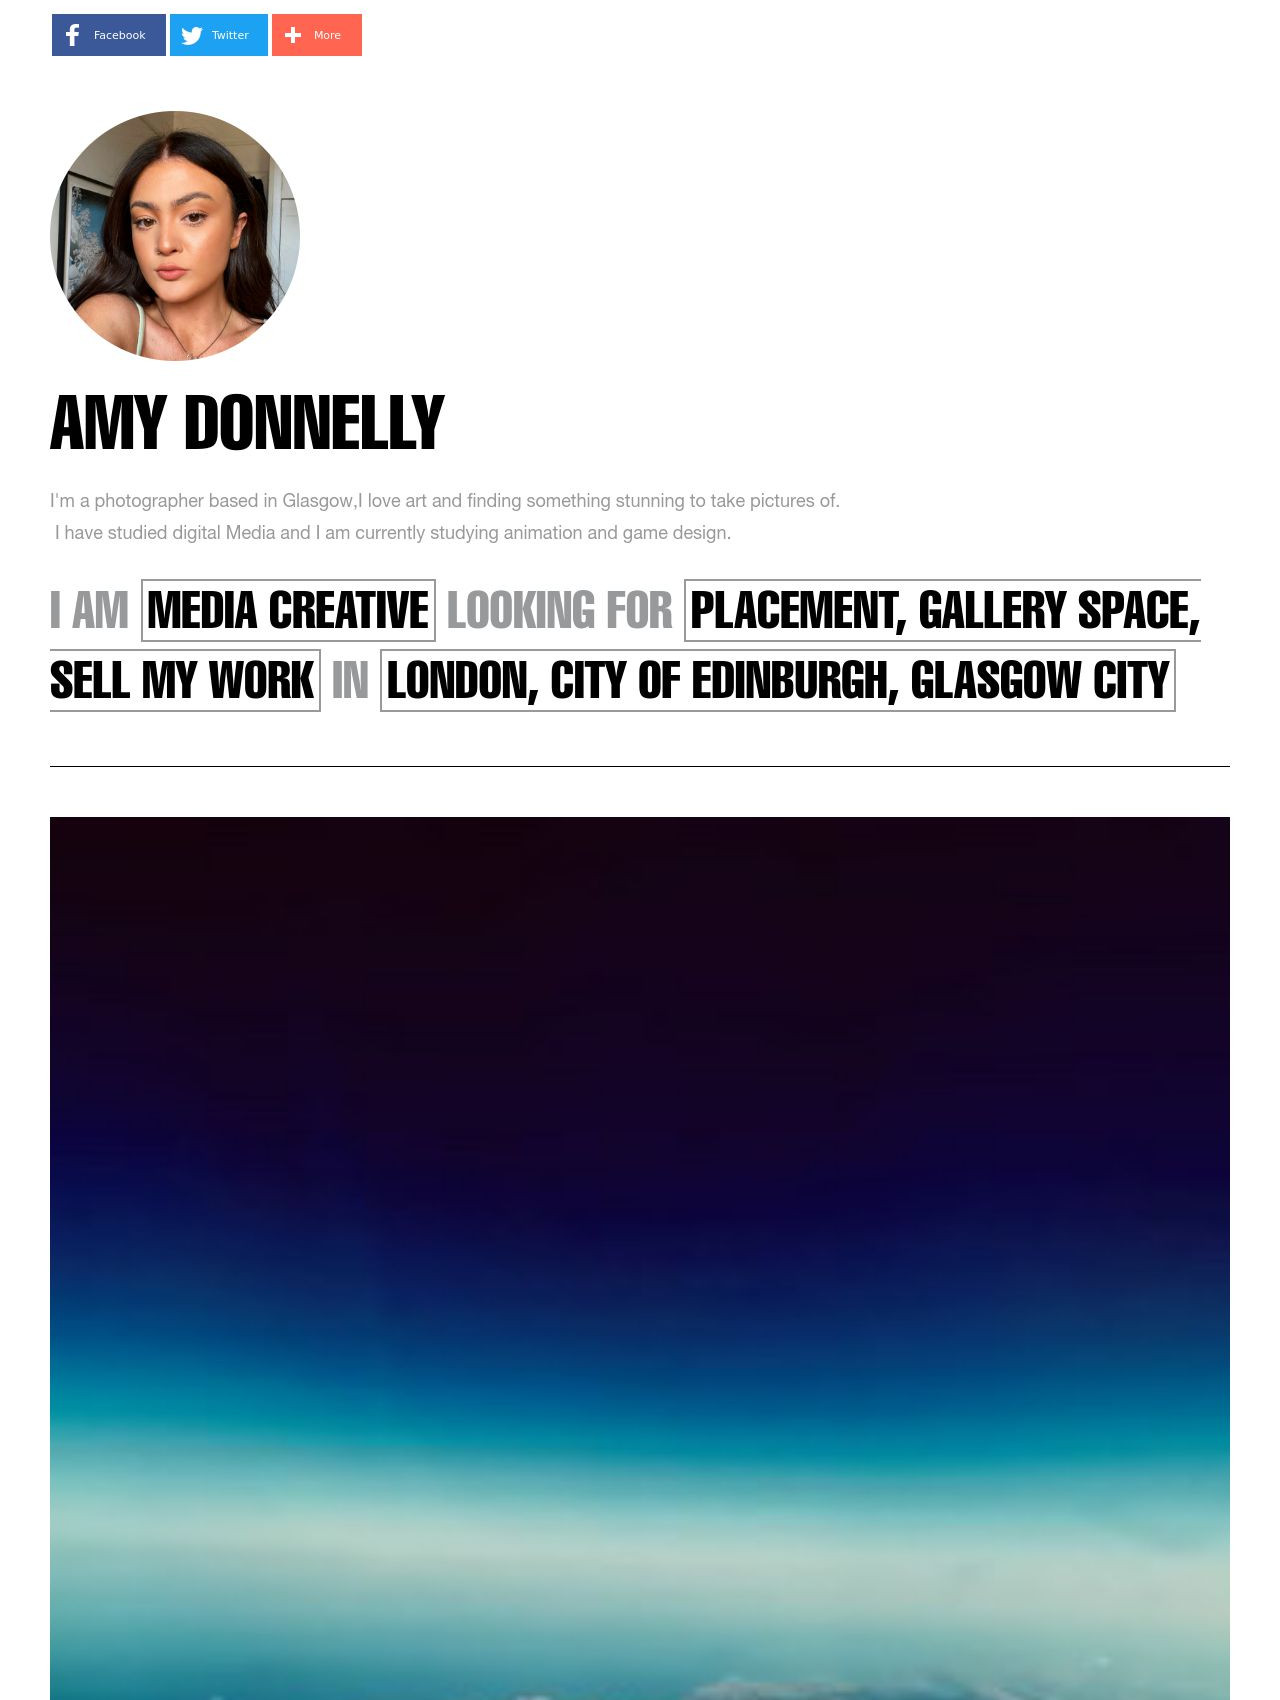 Amy Donnelly